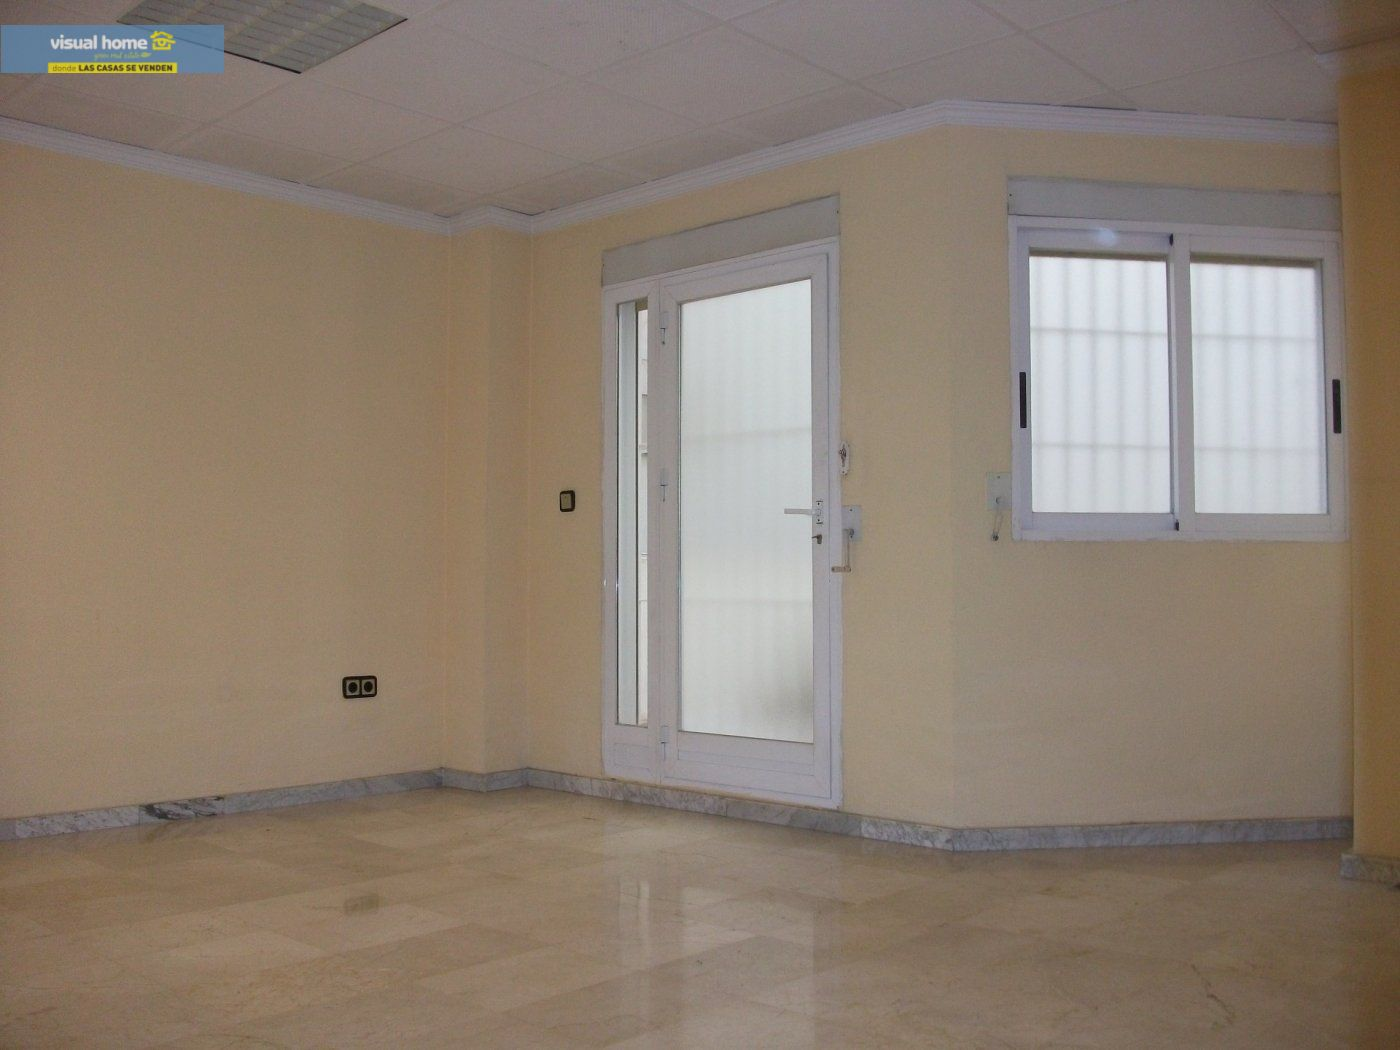 Local comercial en Benidorm zona Colonia Madrid de 93 m²